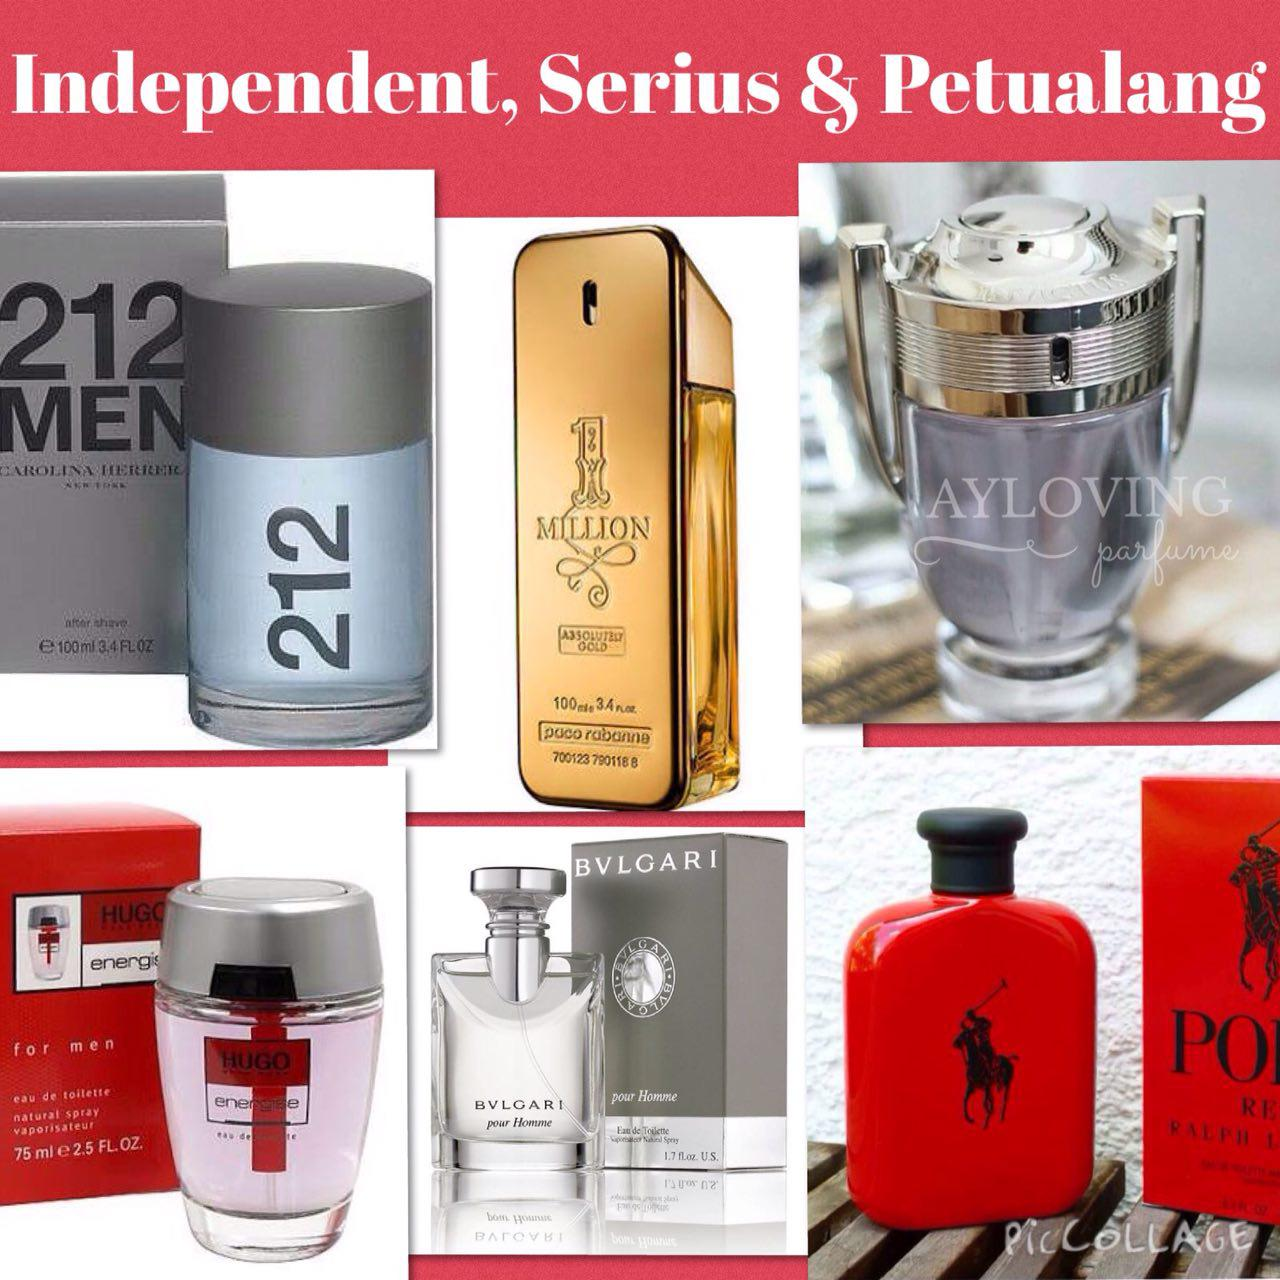 ... Heat Men, Hugo Energize, Polo Explorer, Invictus Paco Rabanne, Gucci  Guilty Pour Homme, Calvin Klein Euphoria, Burberry the Beat, Bvlgari Man  Extreme 2aa8dc93e4b